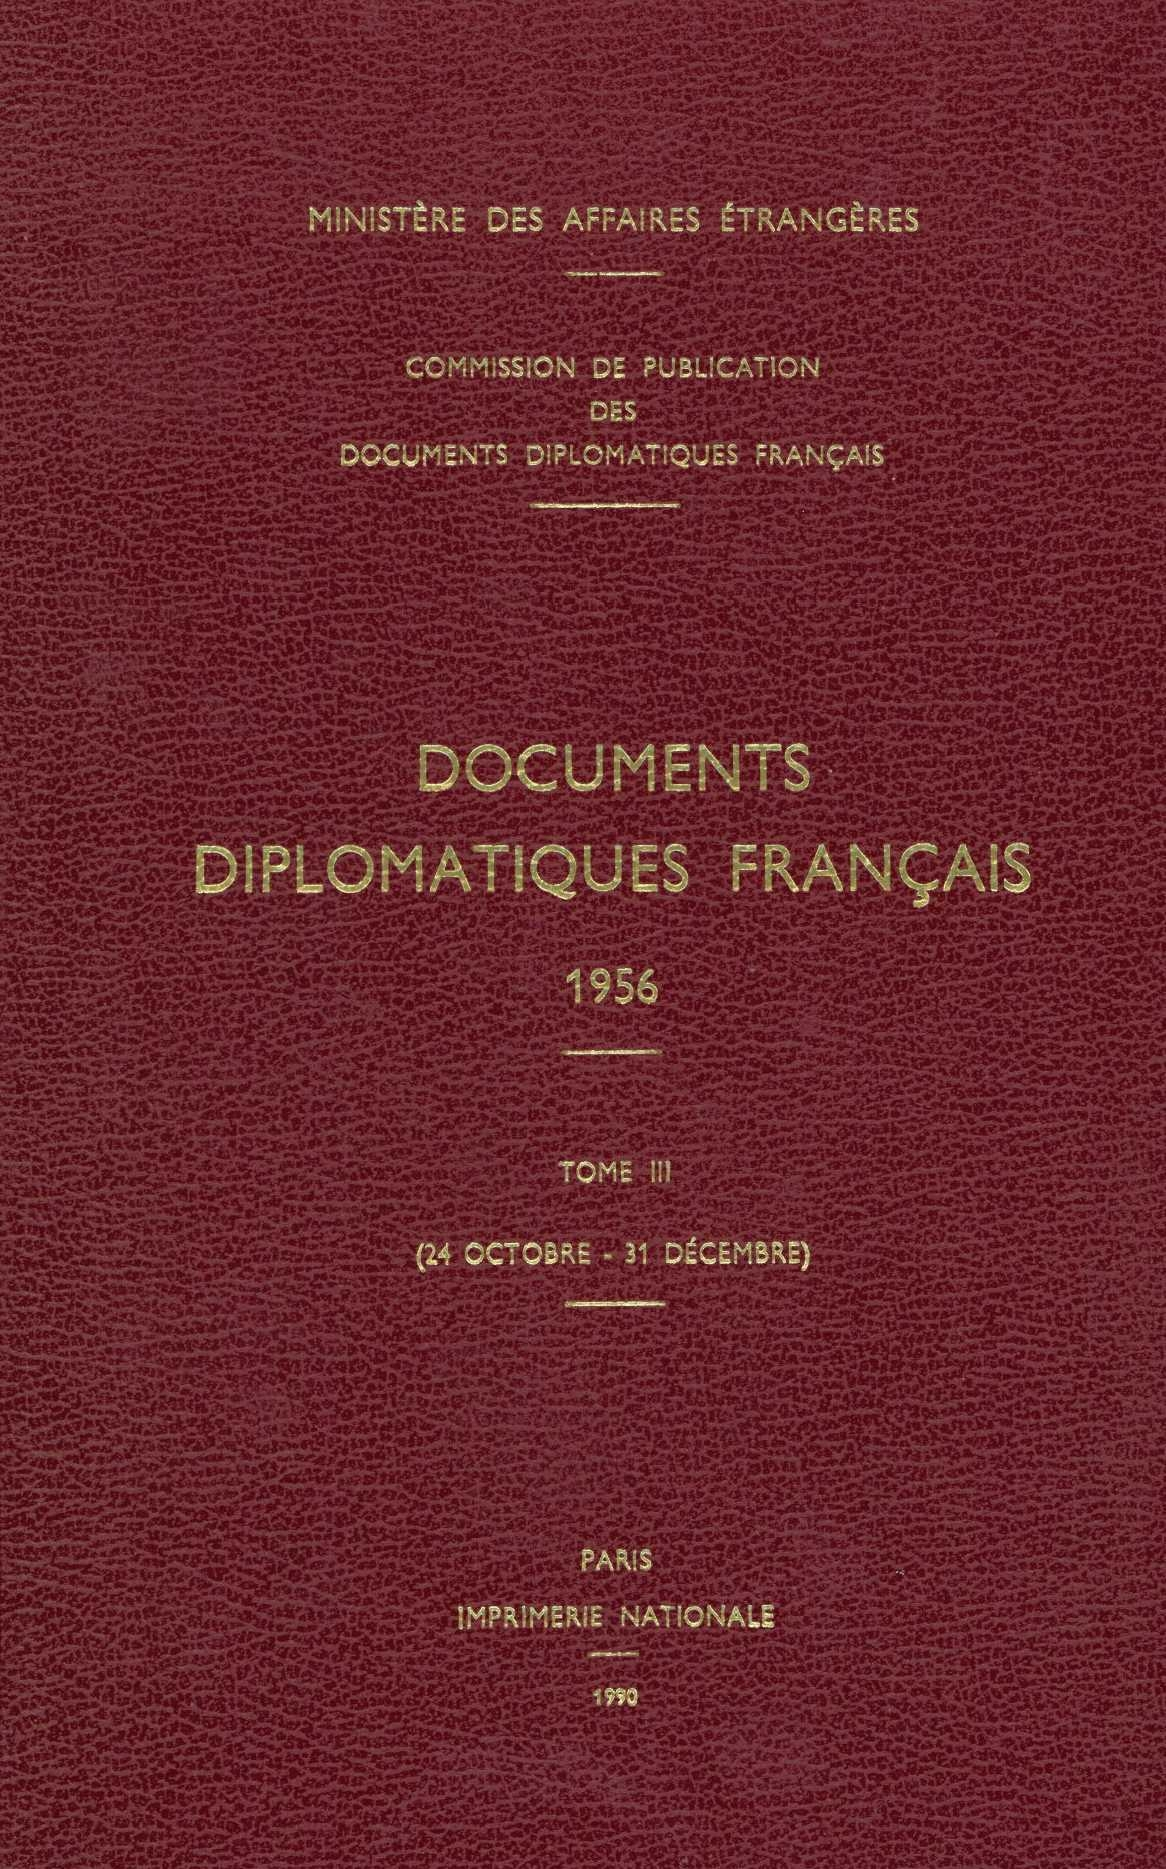 DOCUMENTS DIPLOMATIQUES FRANCAIS - 1956 - TOME III (24 OCTOBRE - 31 DECEMBRE)